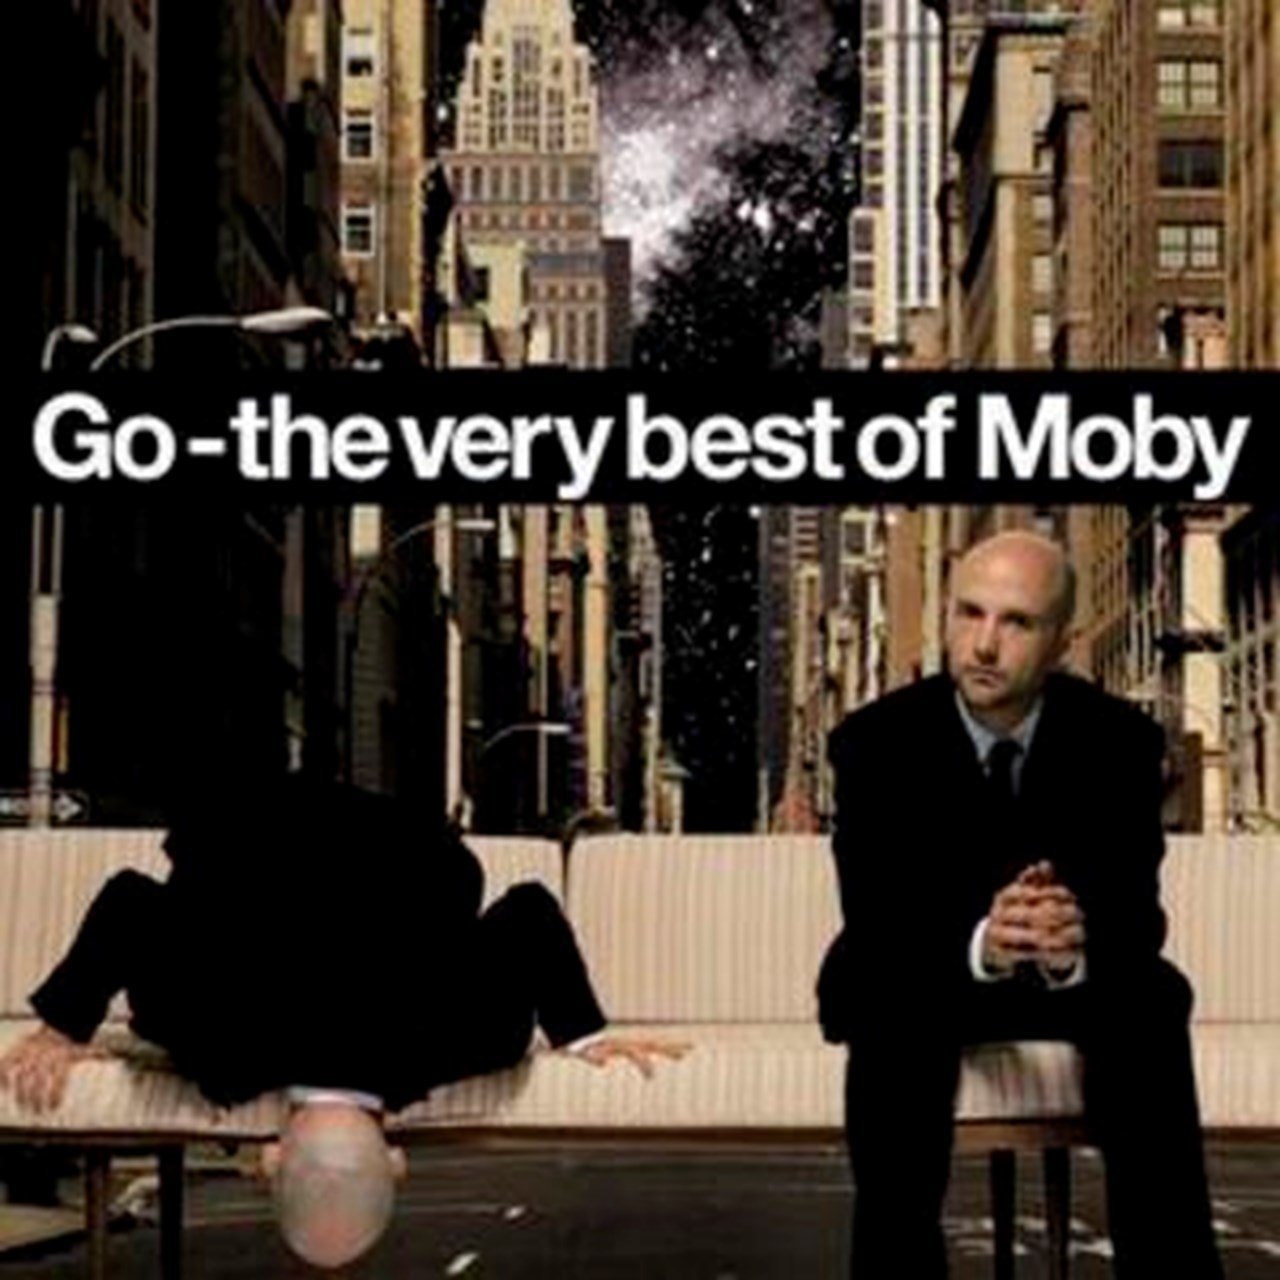 Go - The Very Best of Moby - 1